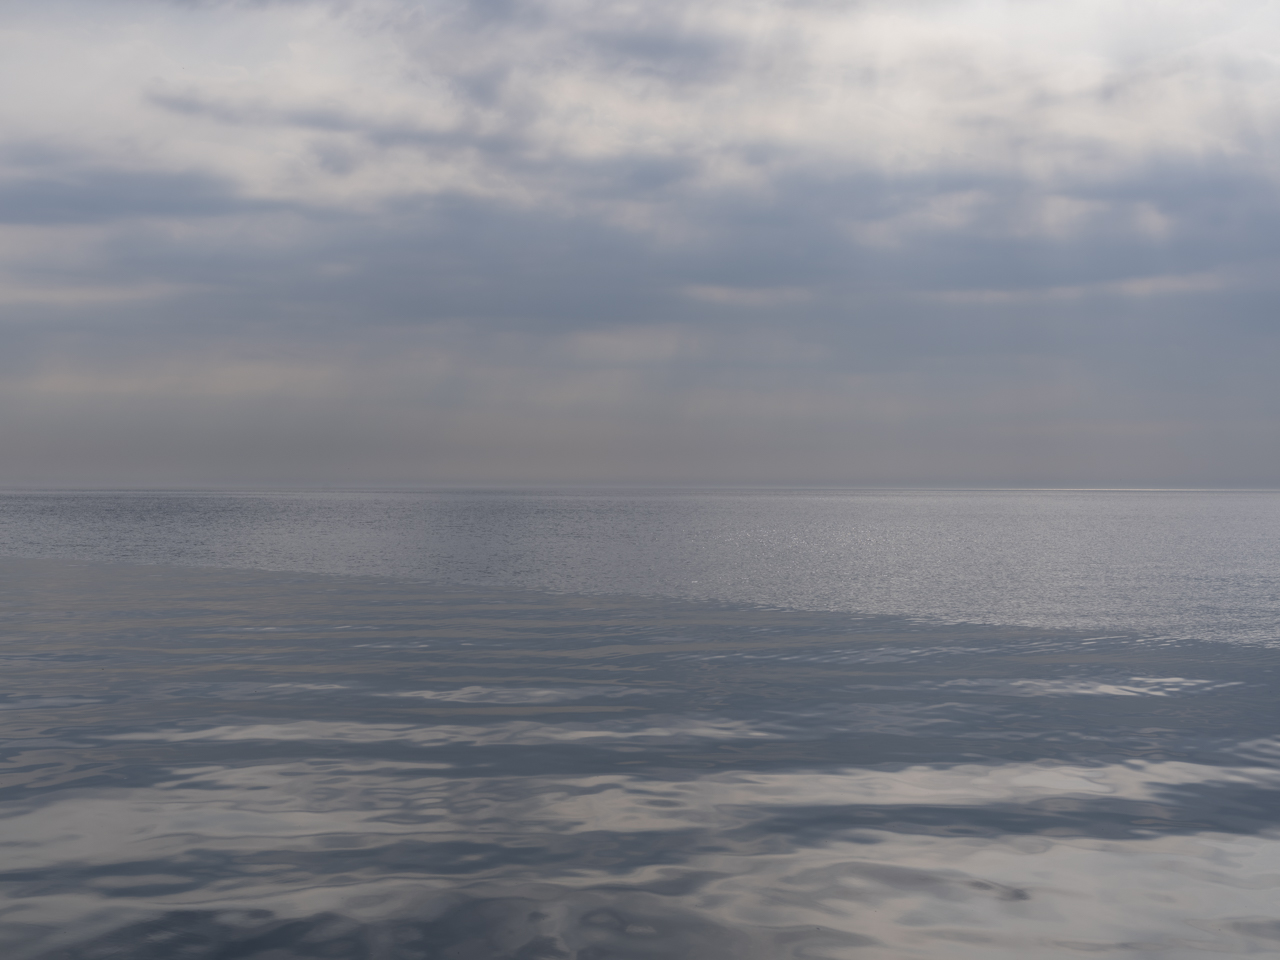 cloudy and hazy blue gray day over Lake Michigan